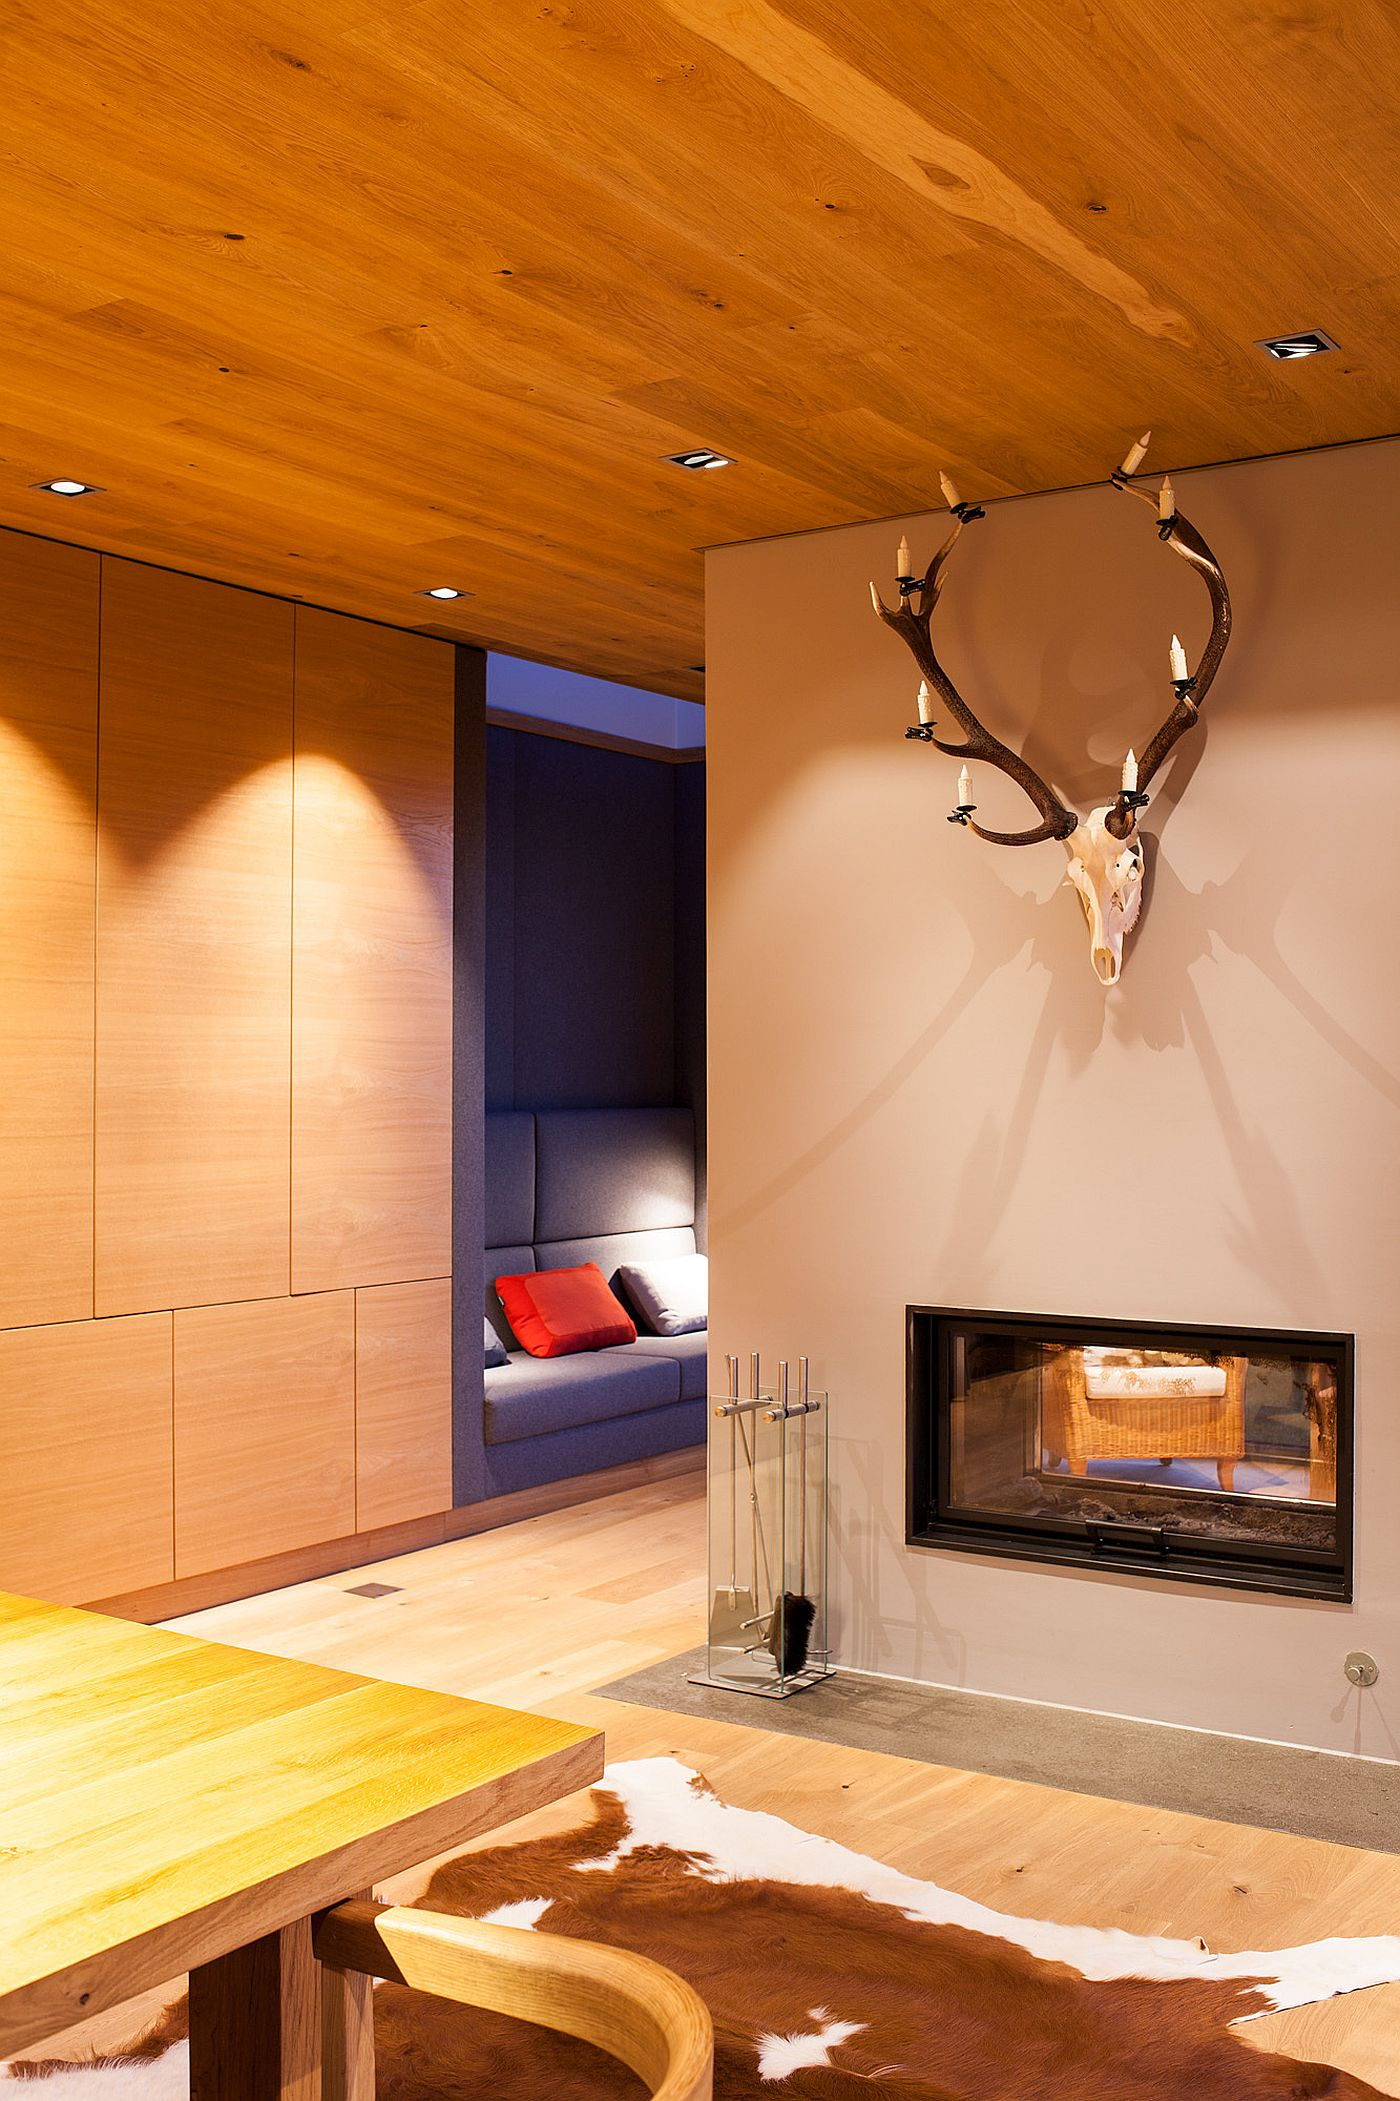 Fireplace and cozy upholstered niche inside the new extension